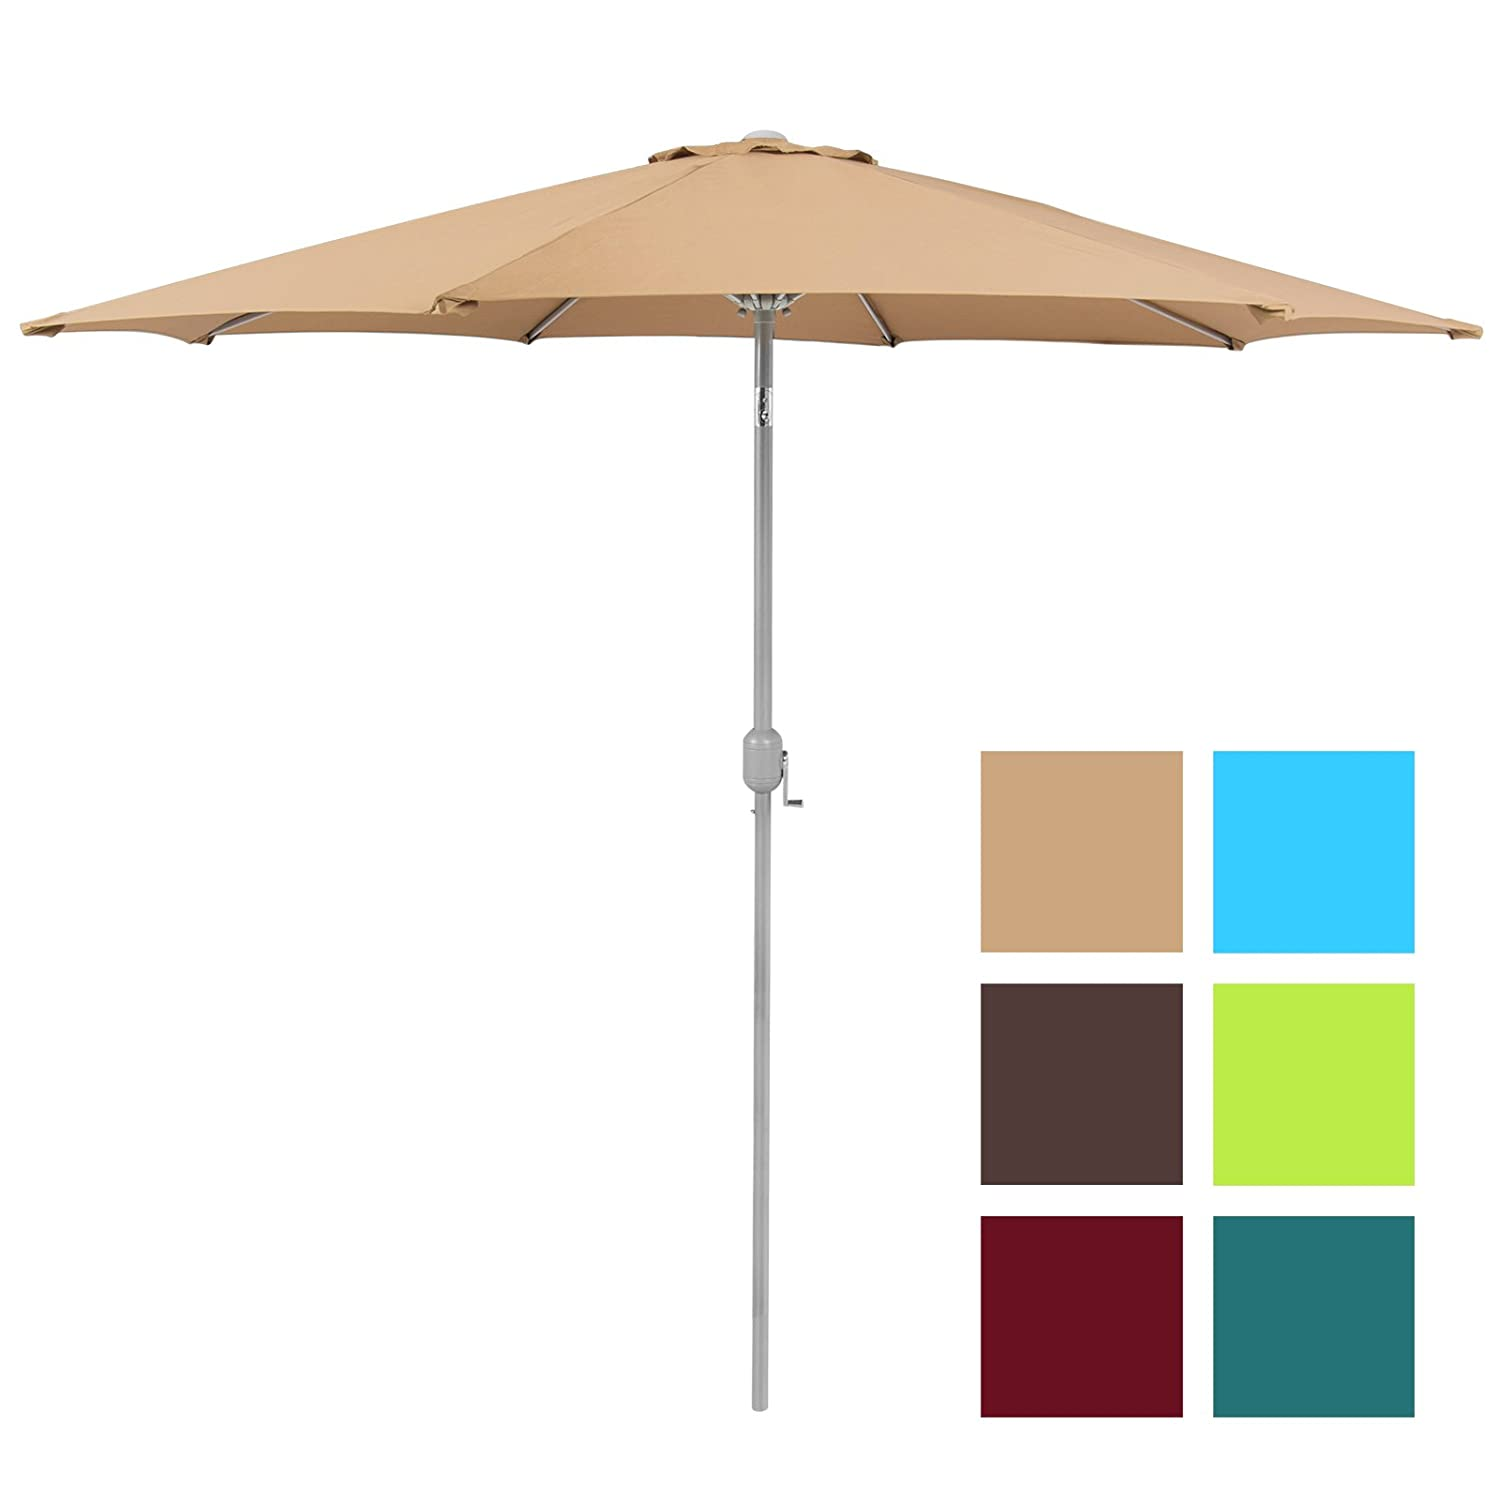 Best Choice Products Patio Umbrella 9' Aluminum Patio Market Umbrella Tilt  W/ Crank Outdoor - Patio Umbrellas Amazon.com